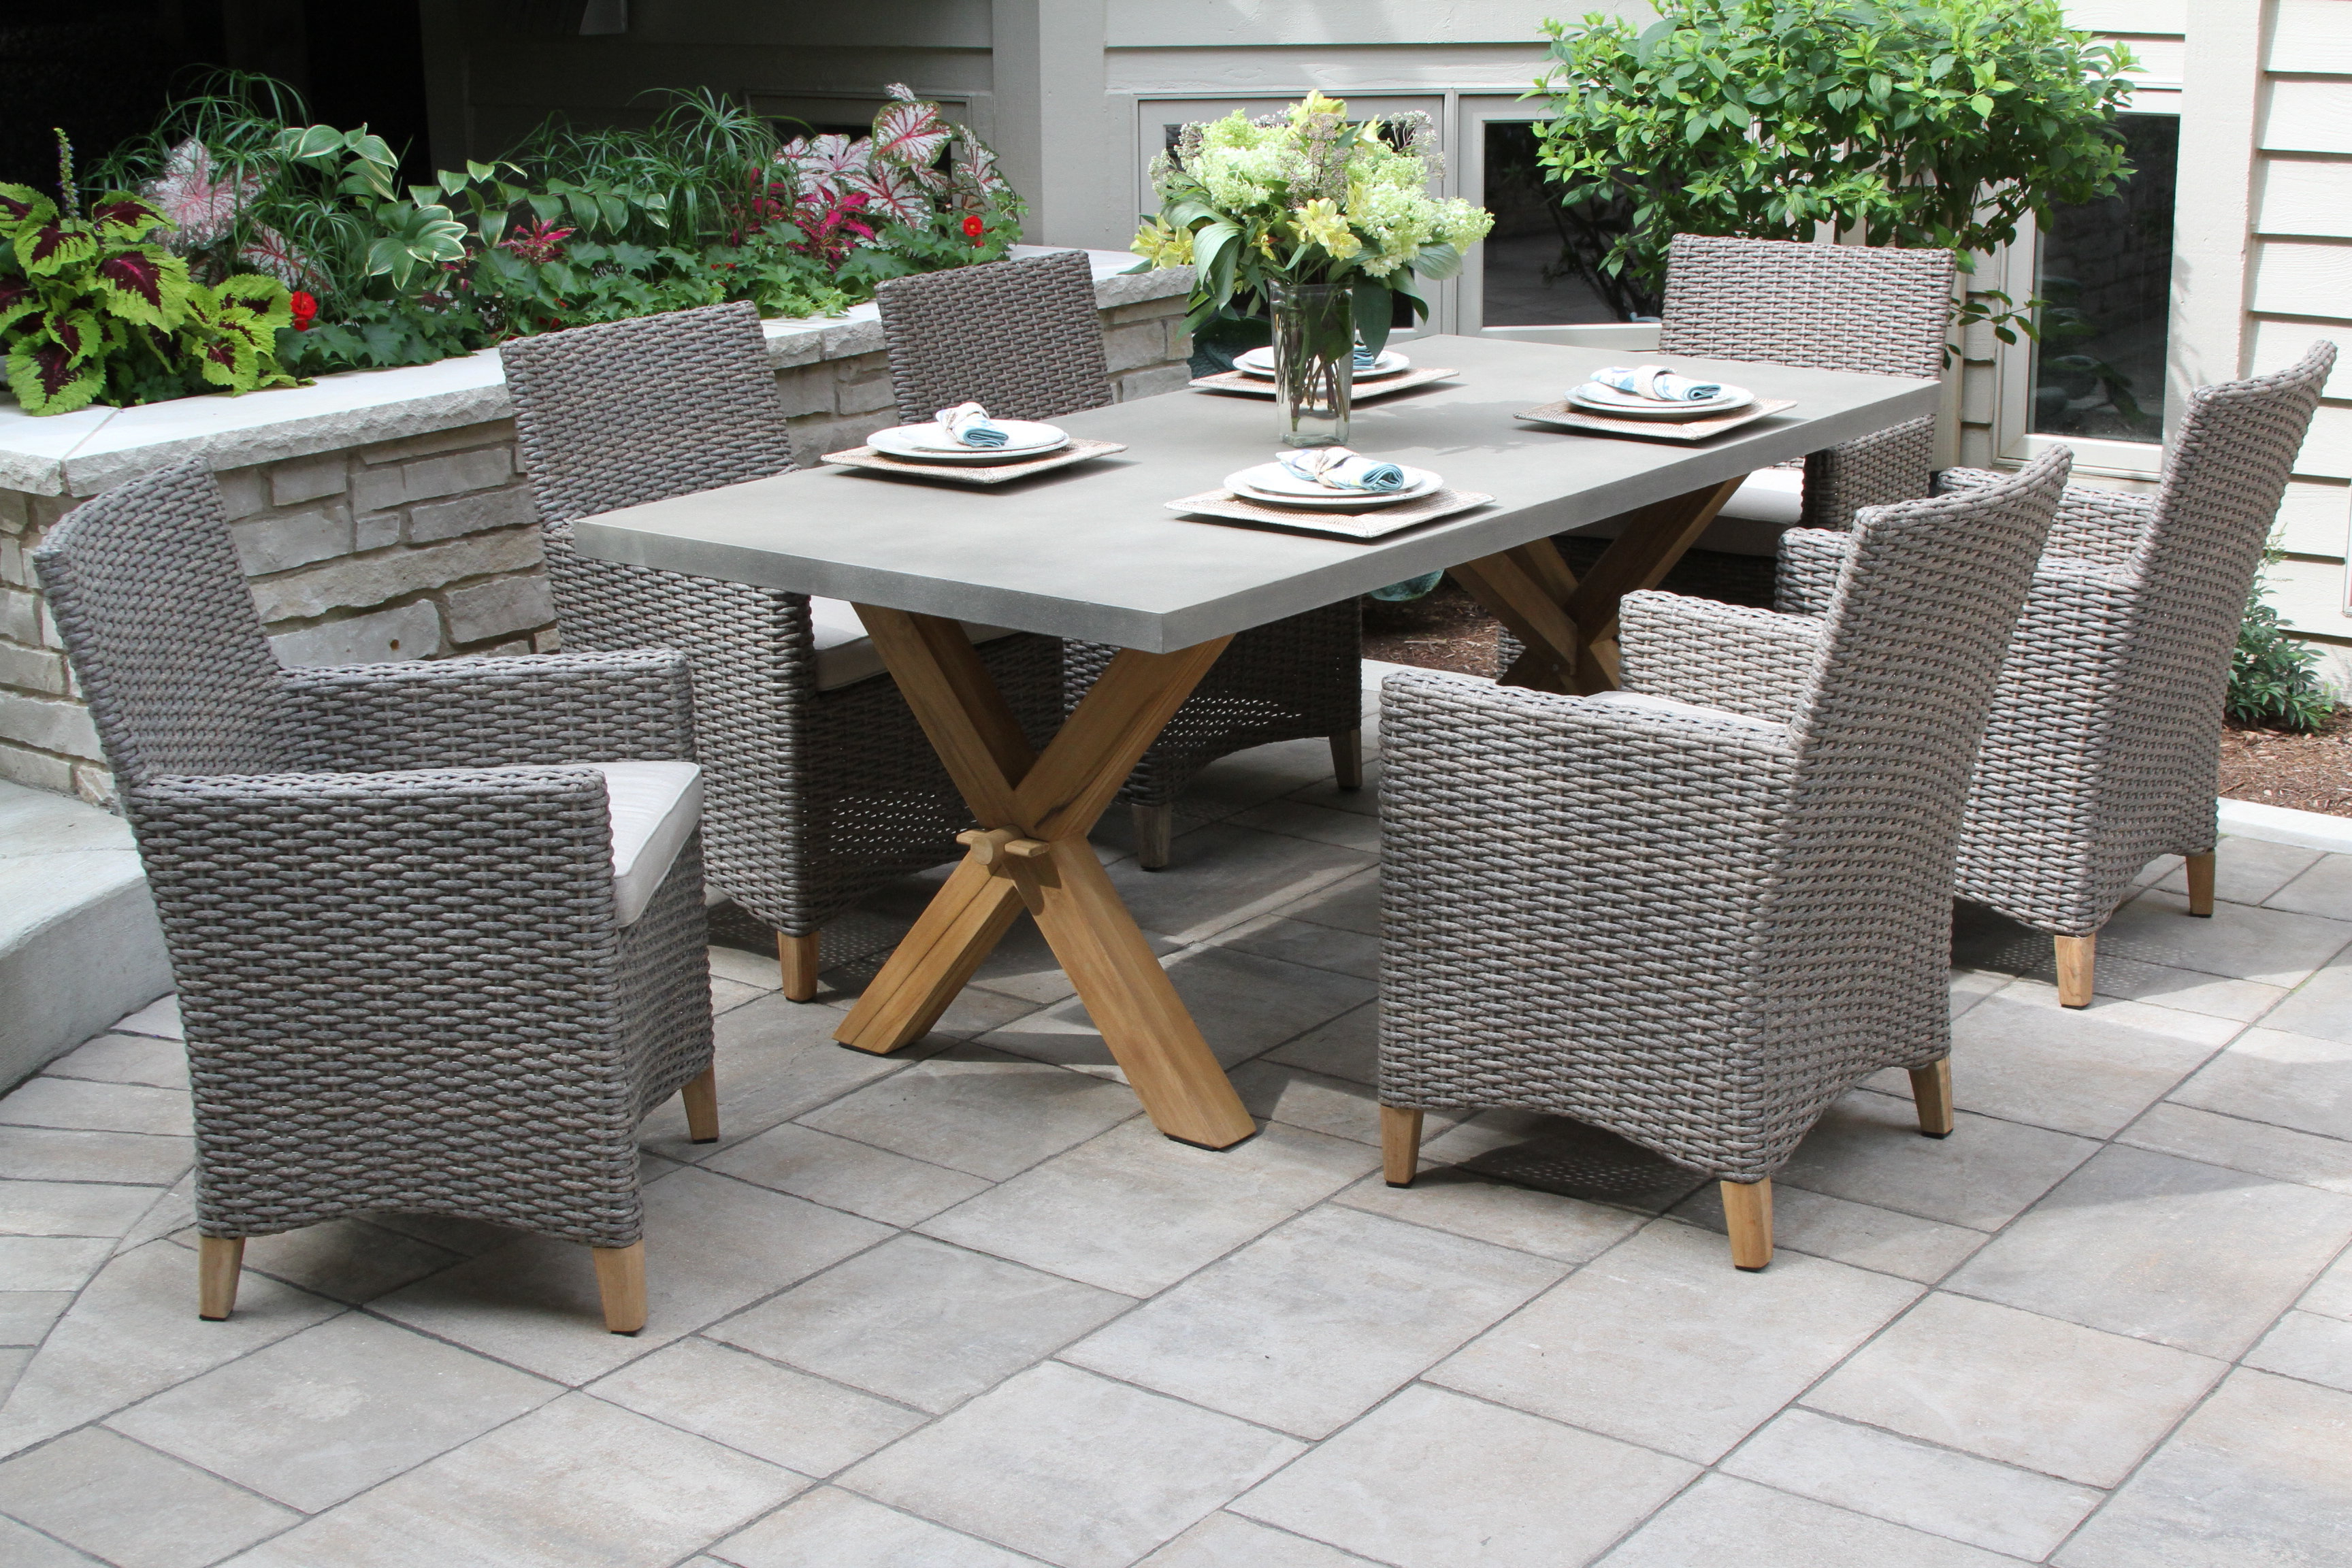 Rossi 5 Piece Dining Sets With Regard To Current Stedman 7 Piece Teak Dining Set With Sunbrella Cushions (View 16 of 20)